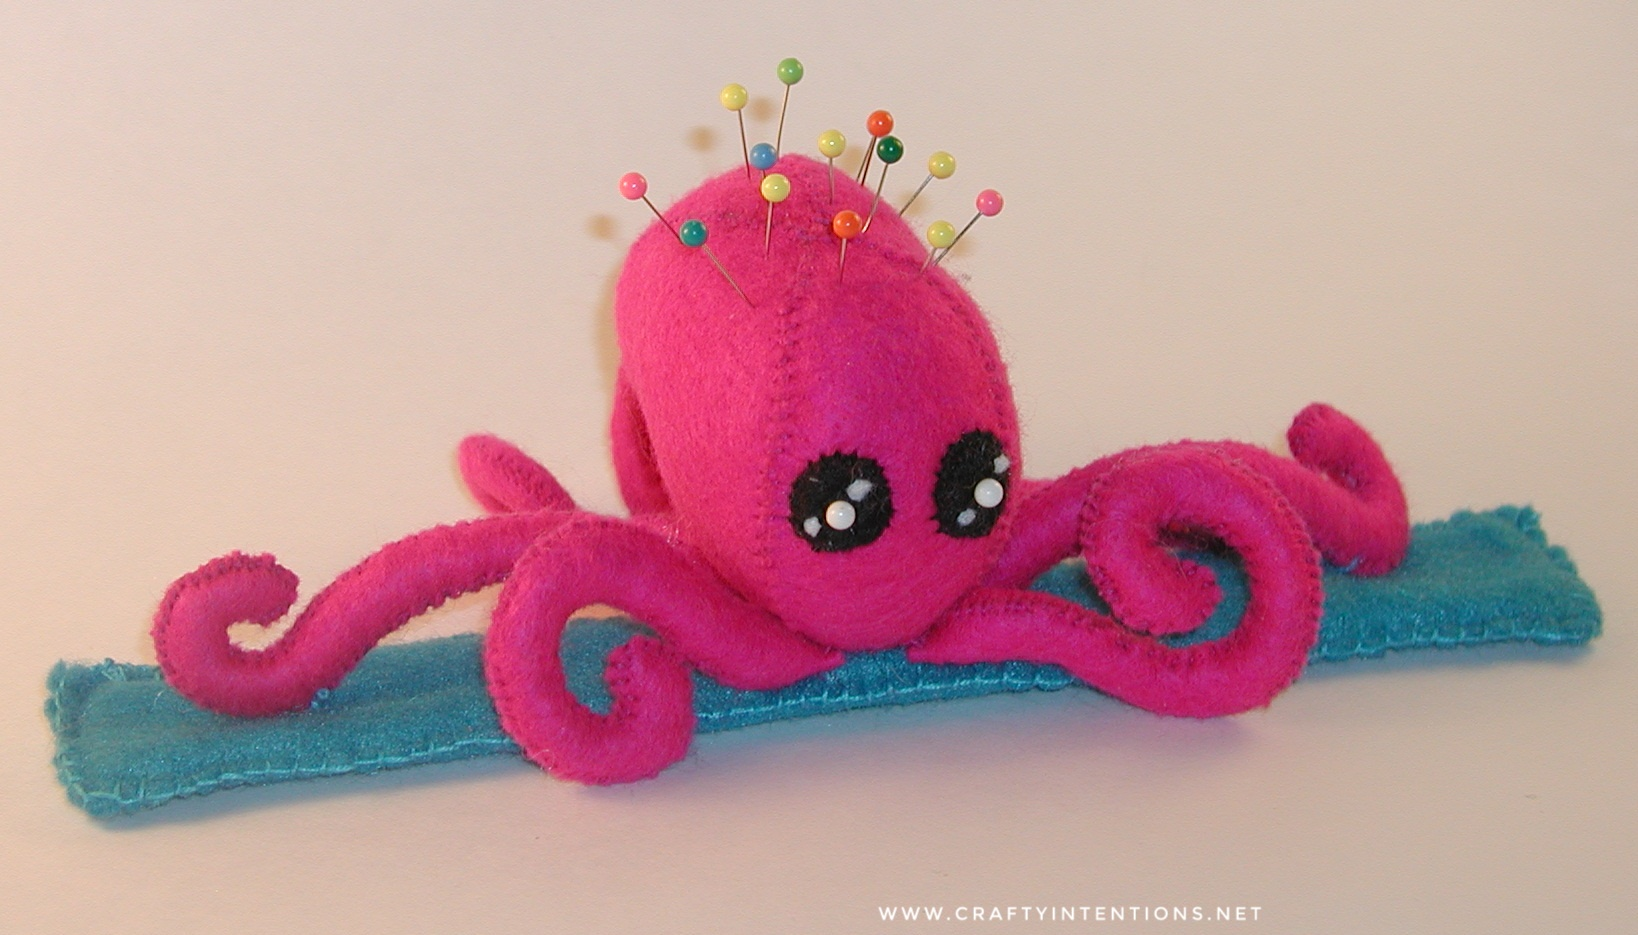 2009 Pink Octopus Snap Bracelet Pincushion-01.jpeg